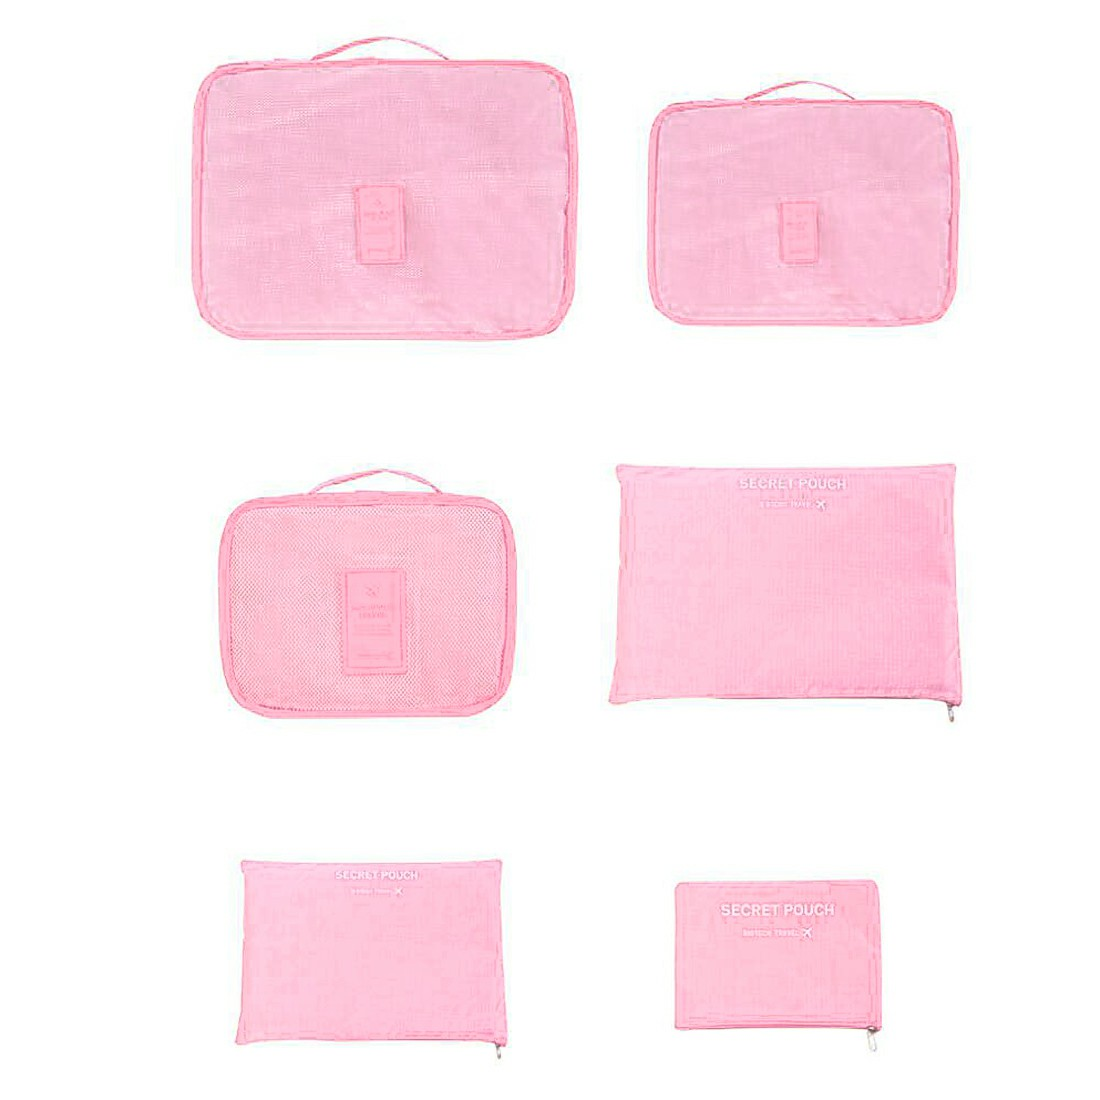 6pcs Waterproof Travel Storage Bags Clothes Packing Organizer - Pink